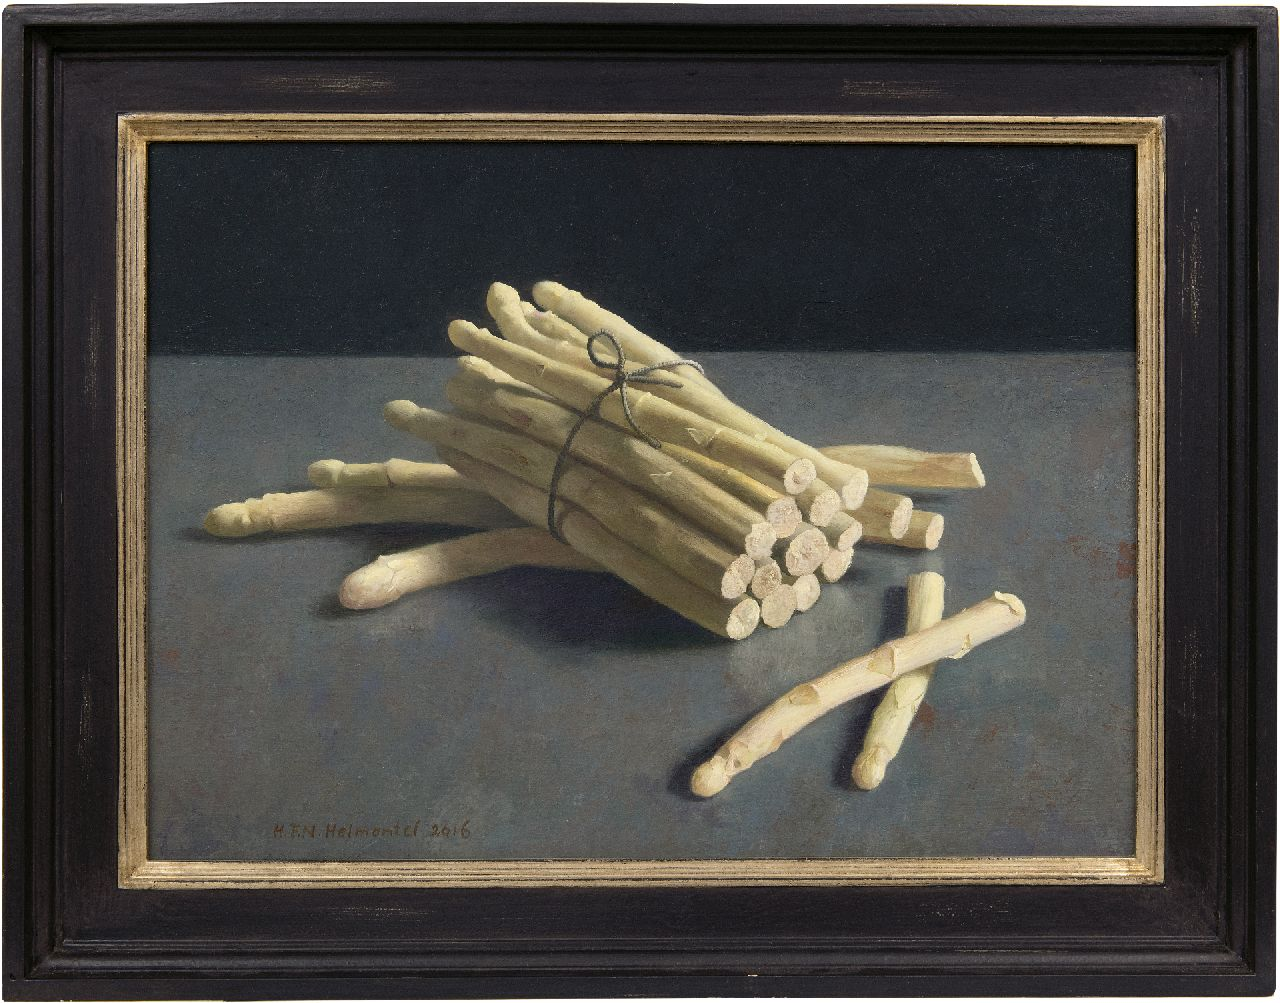 Helmantel H.F.N.  | Hindrik Frans Nicolaas 'Henk' Helmantel | Paintings offered for sale | Asparagus from the fish market, oil on board 40.0 x 54.6 cm, signed l.l. and dated 2016